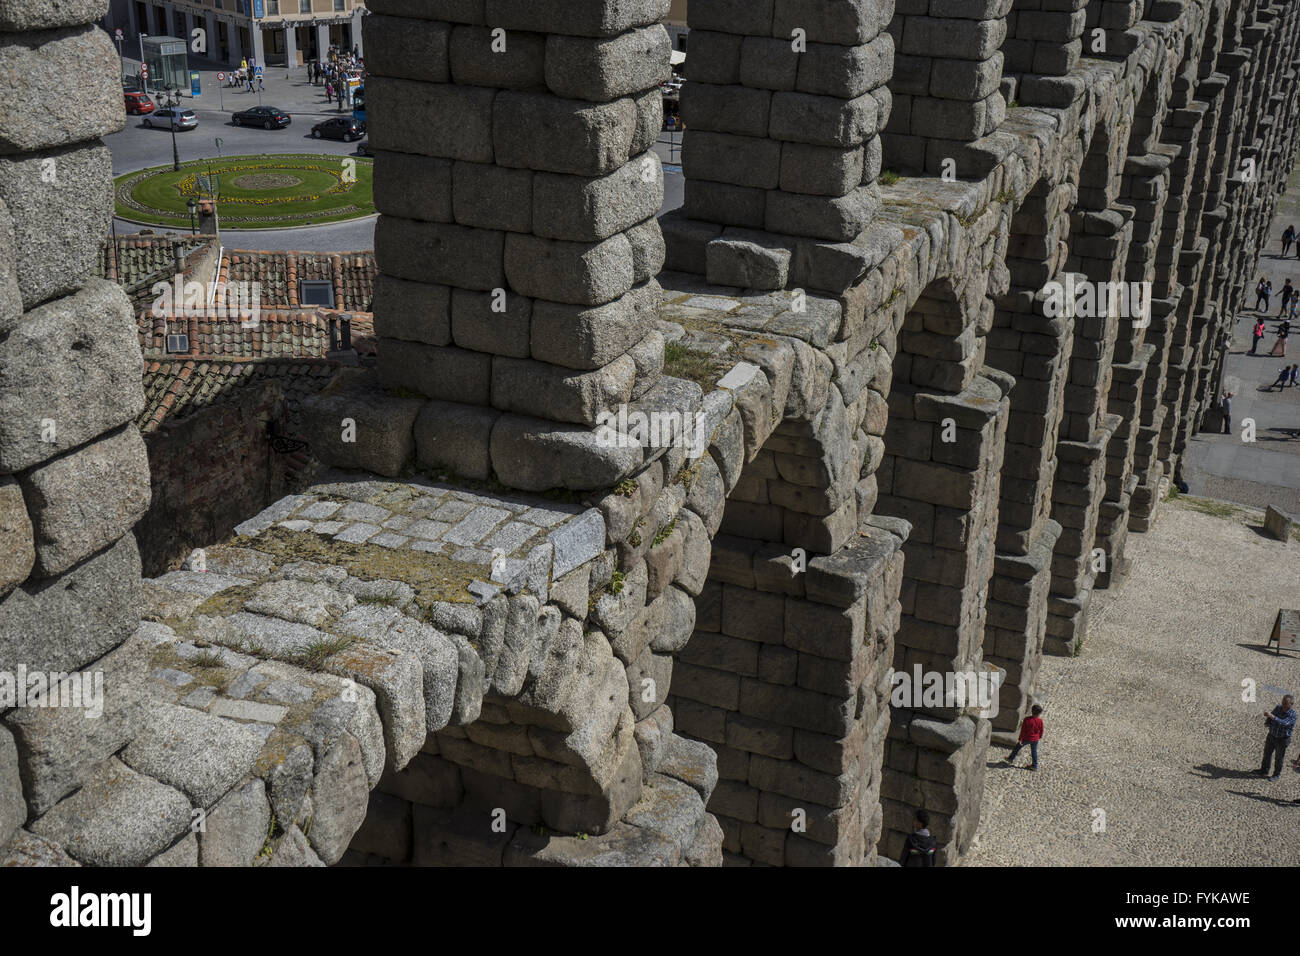 Roman aqueduct of segovia. architectural monument declared patrimony of humanity and international interest by UNESCO - Stock Image